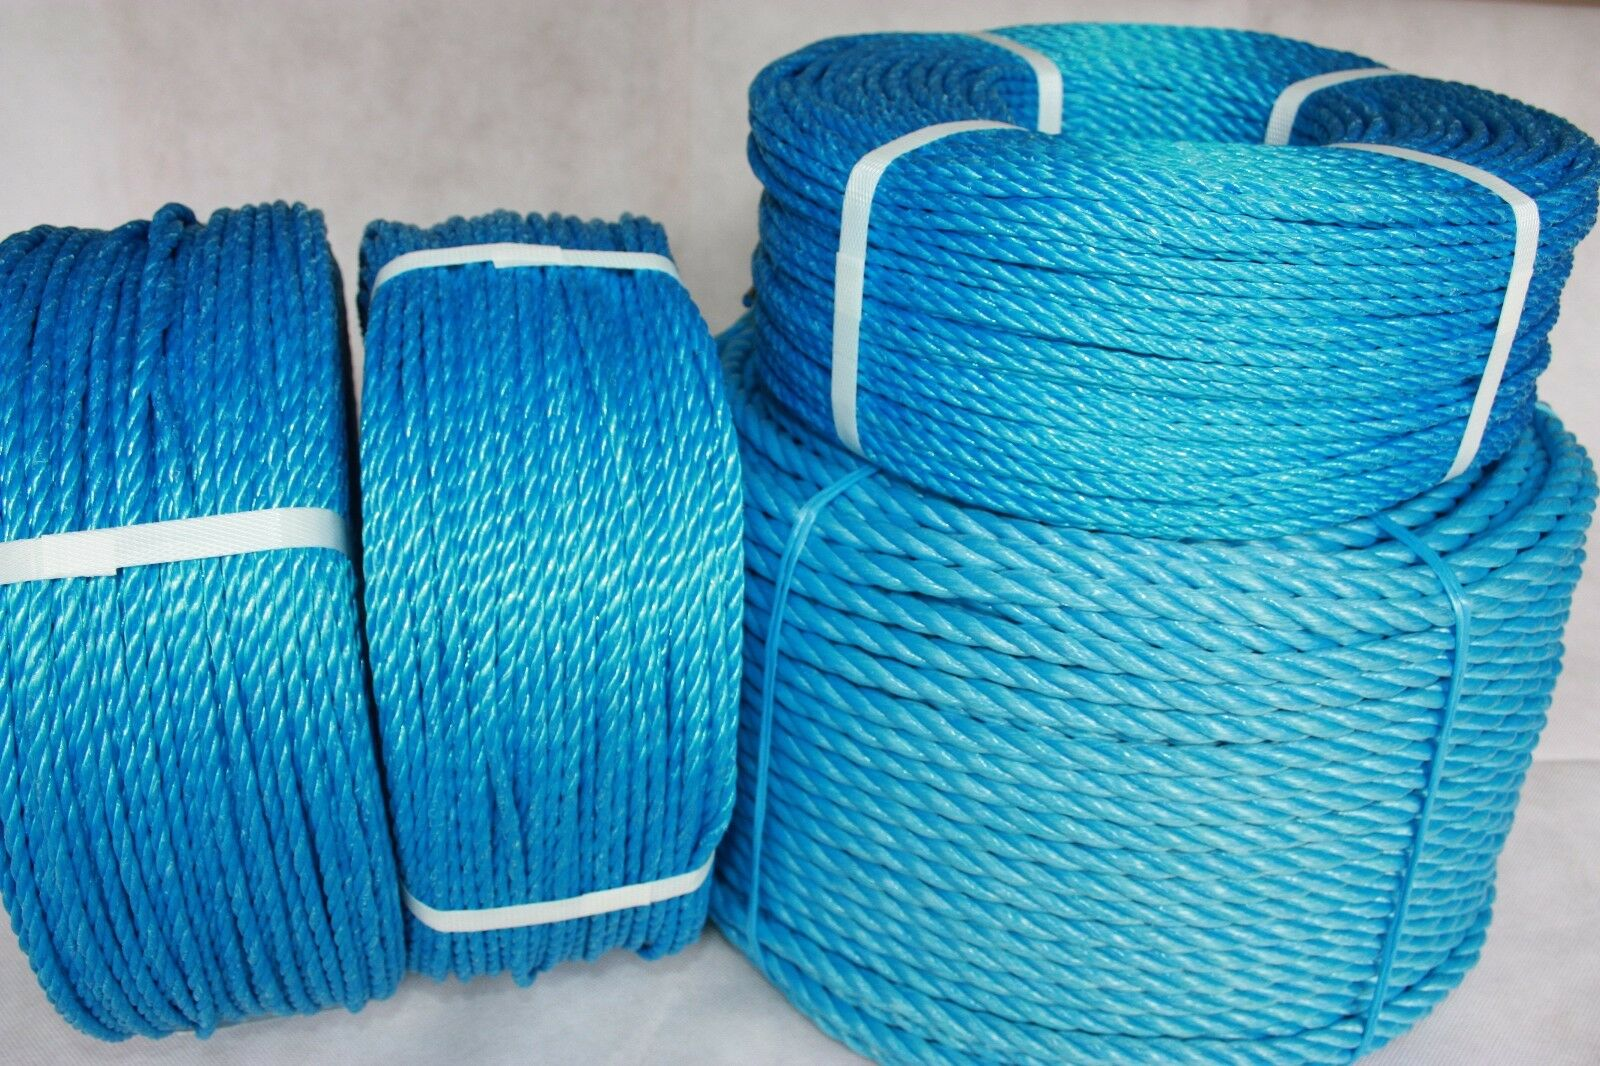 bluee polypropylene Nylon Rope 6-24mm for Camping, sailing, marine & general use.